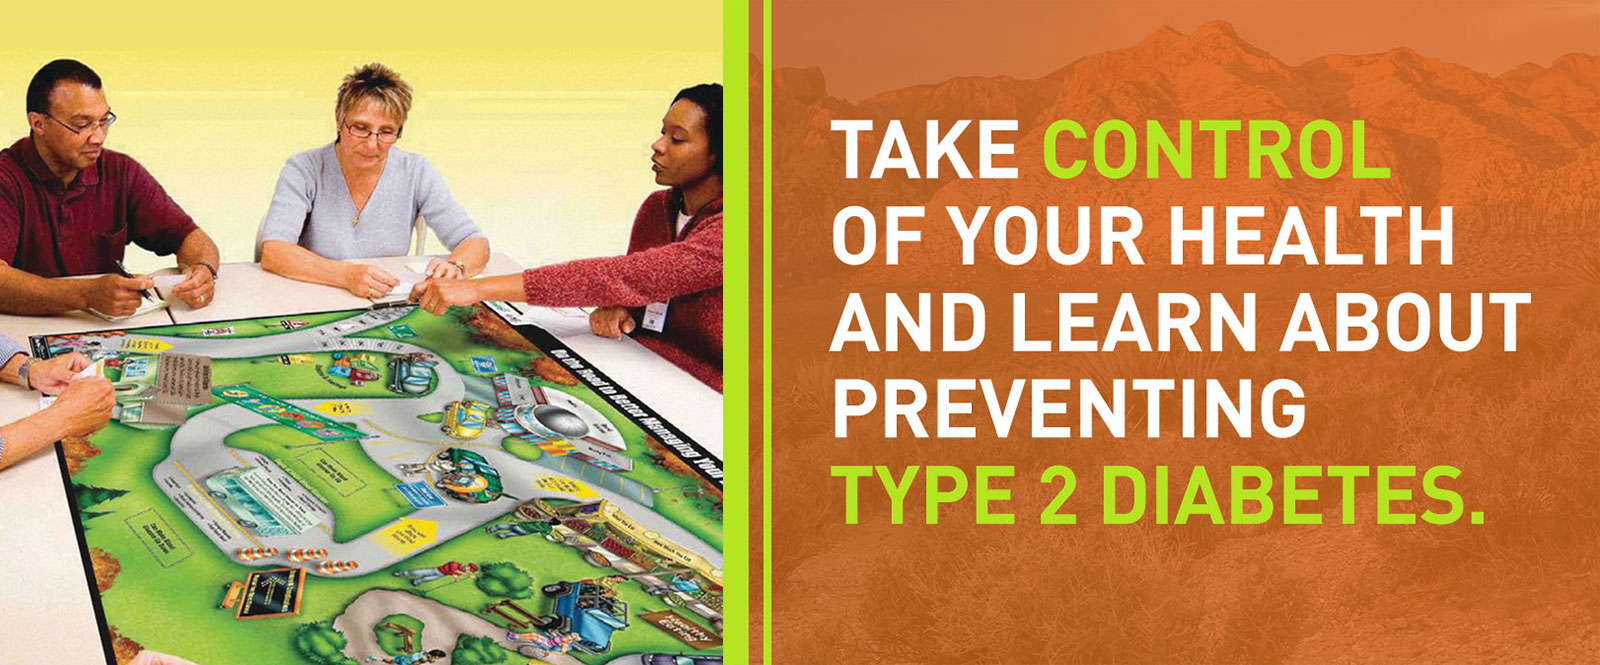 Take control of your health and learn to prevent type 2 diabetes